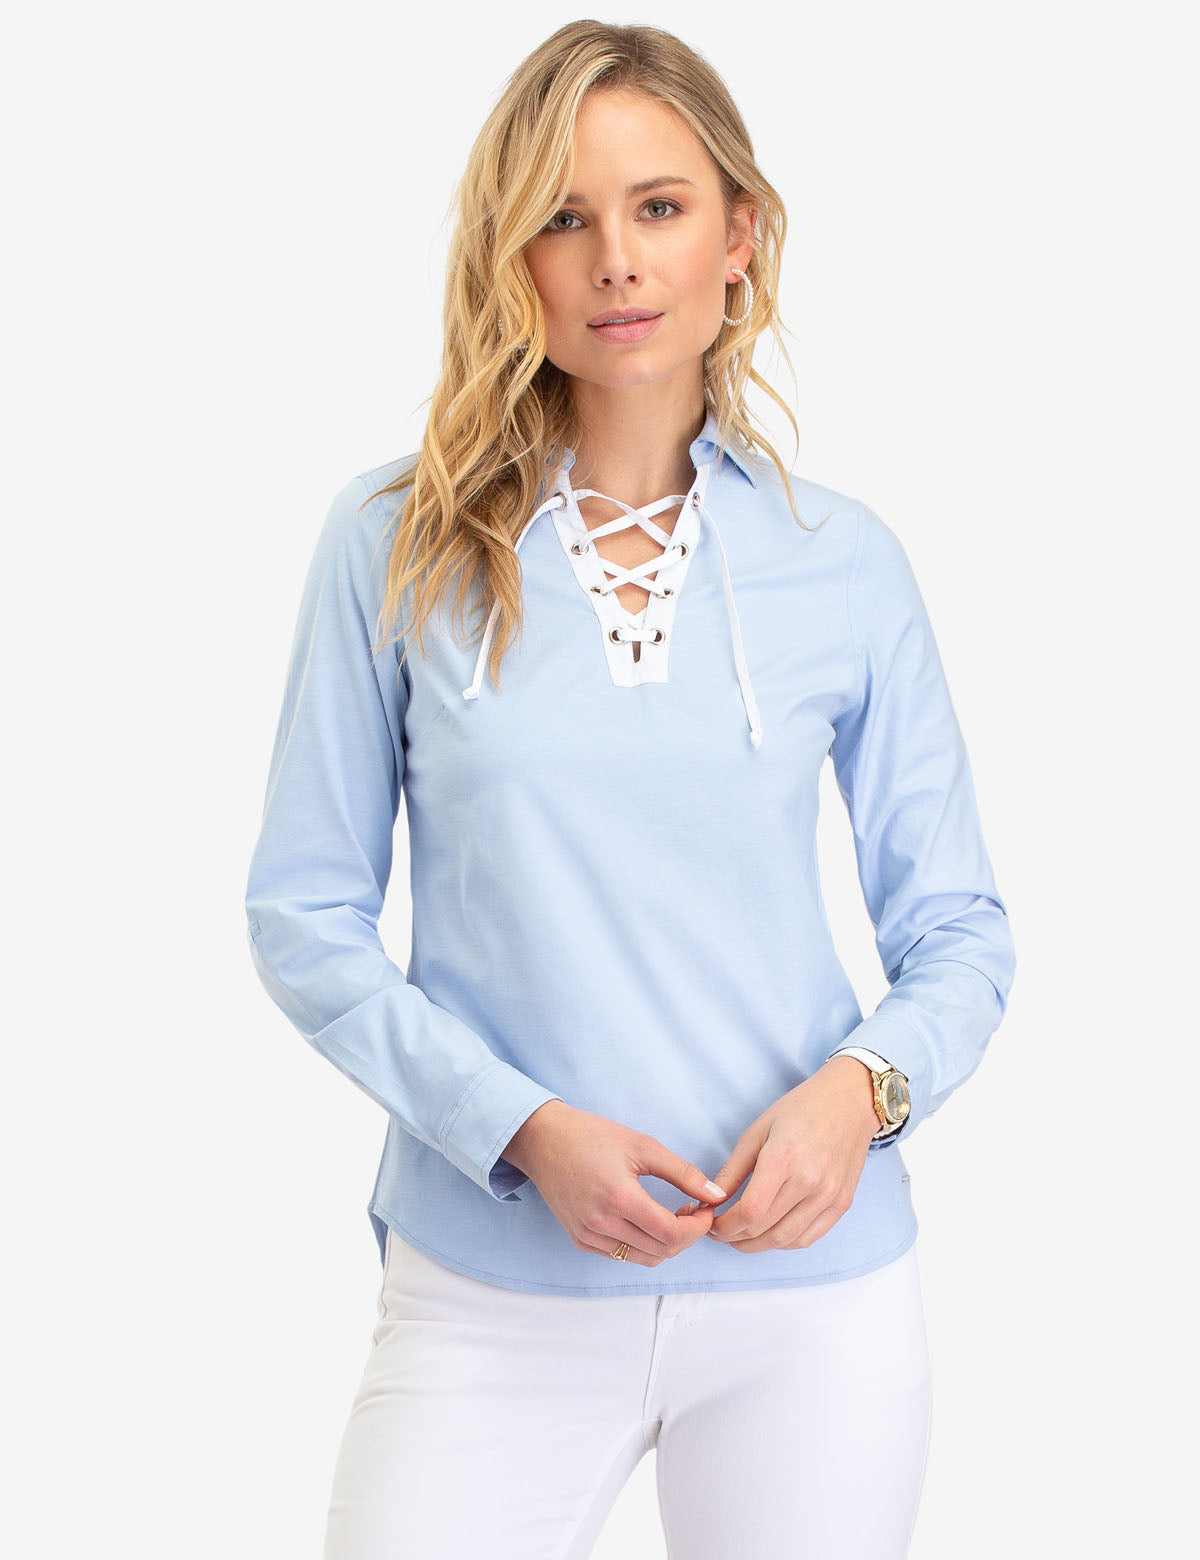 LACE UP OXFORD SHIRT - U.S. Polo Assn.